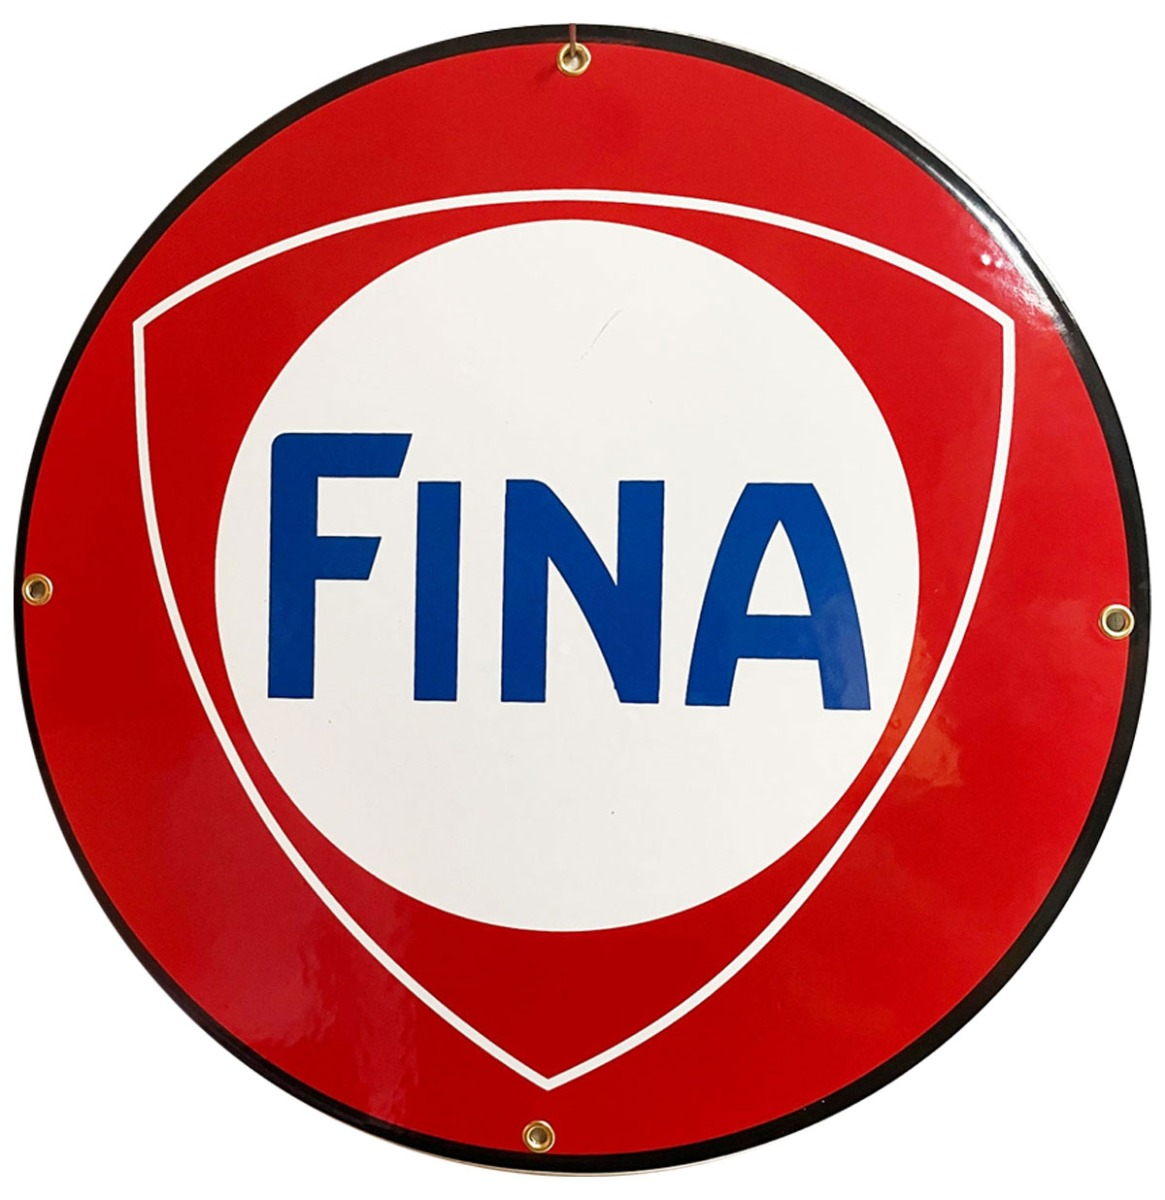 Fina Logo Rond Emaille Bord 30 cm